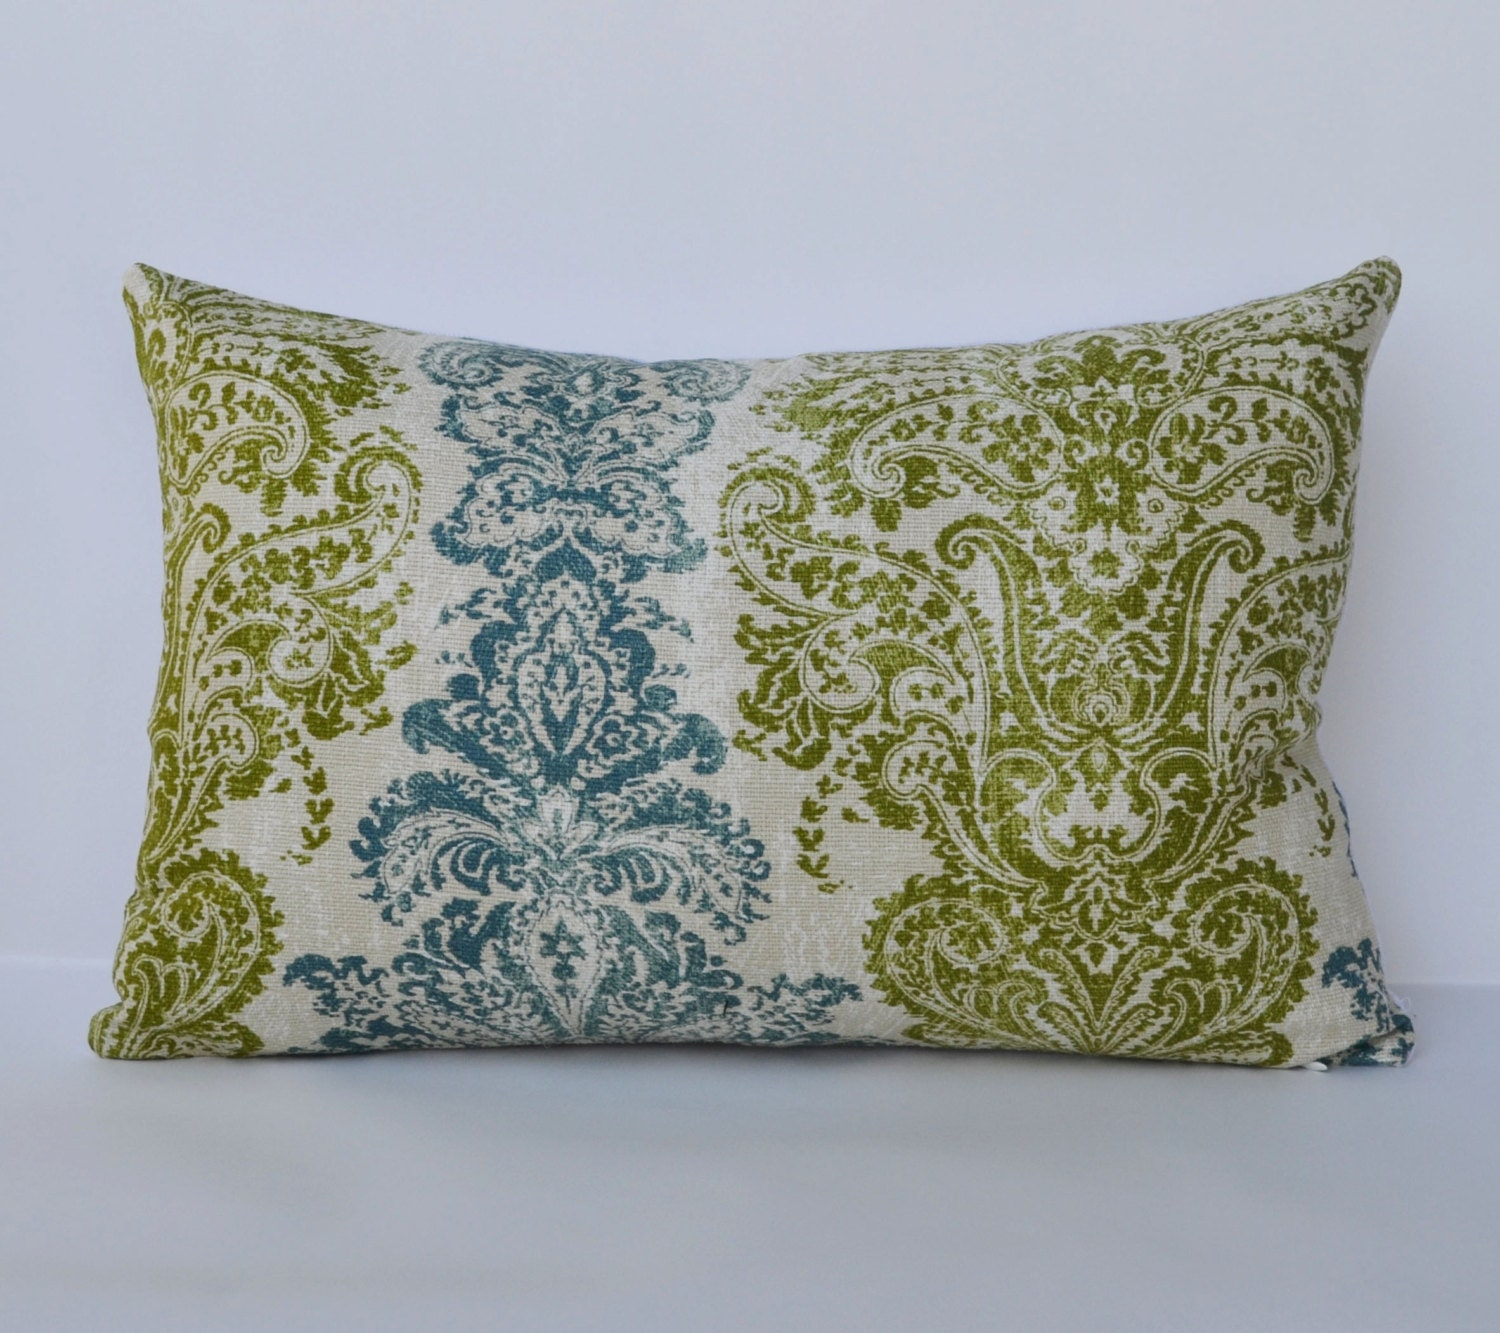 Teal Green Decorative Pillows : Decorative Pillows 12x18 teal green distressed by Palaceorhut